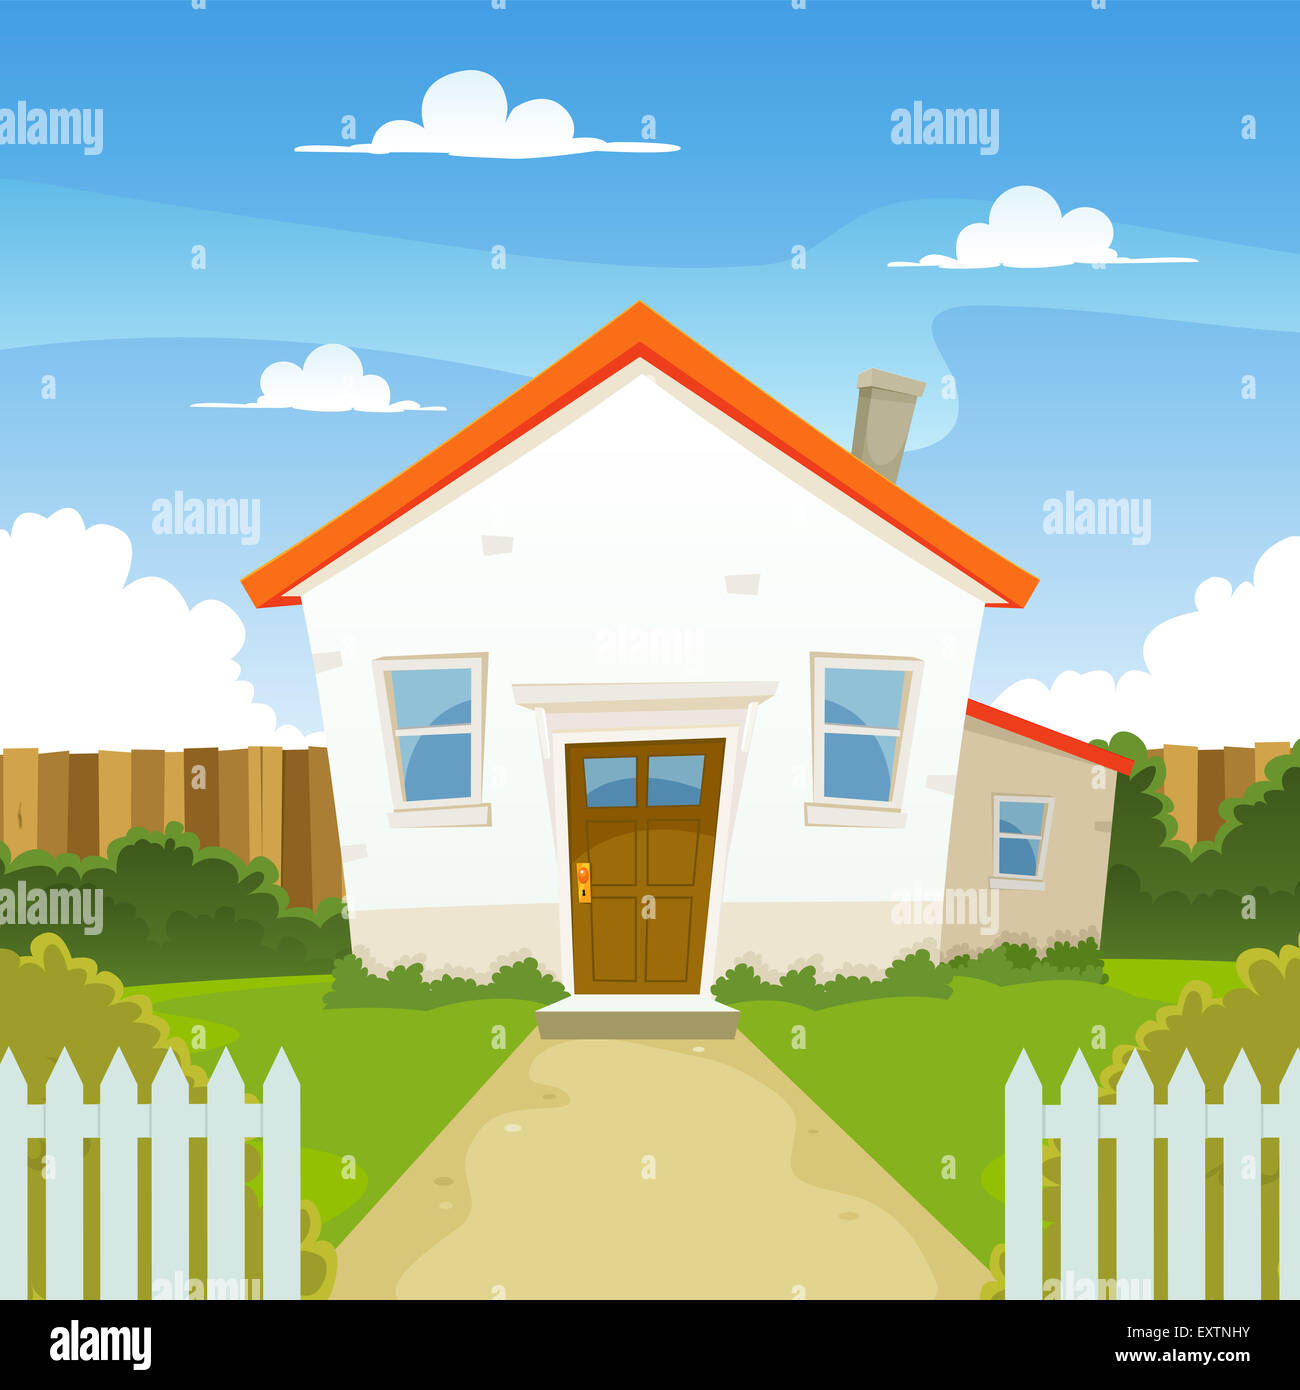 House With Garage And Backyard Stock Photos Amp House With